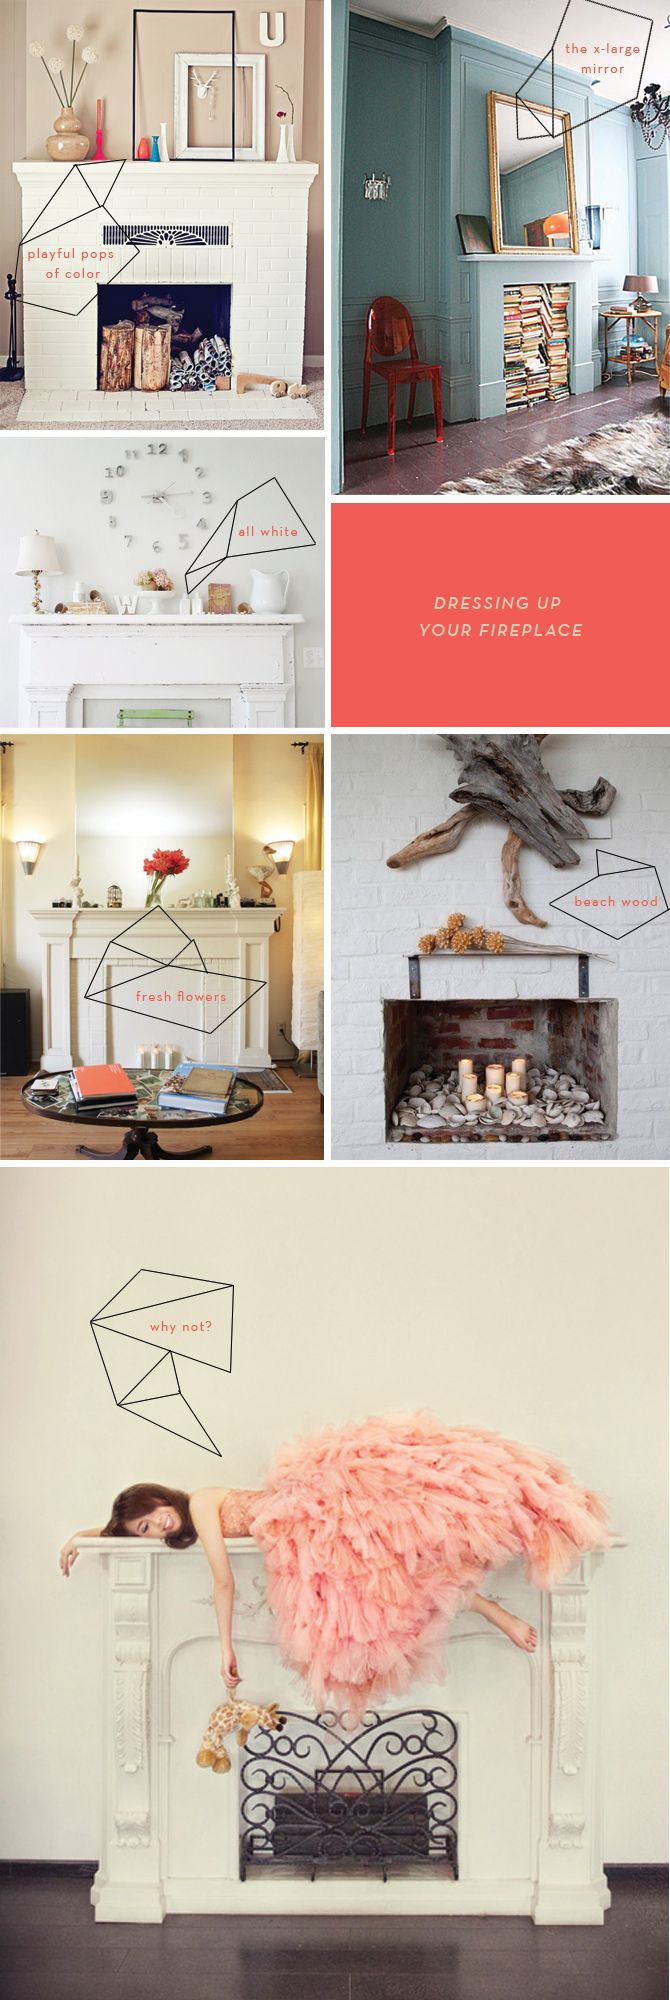 dressing up your fireplace mantle